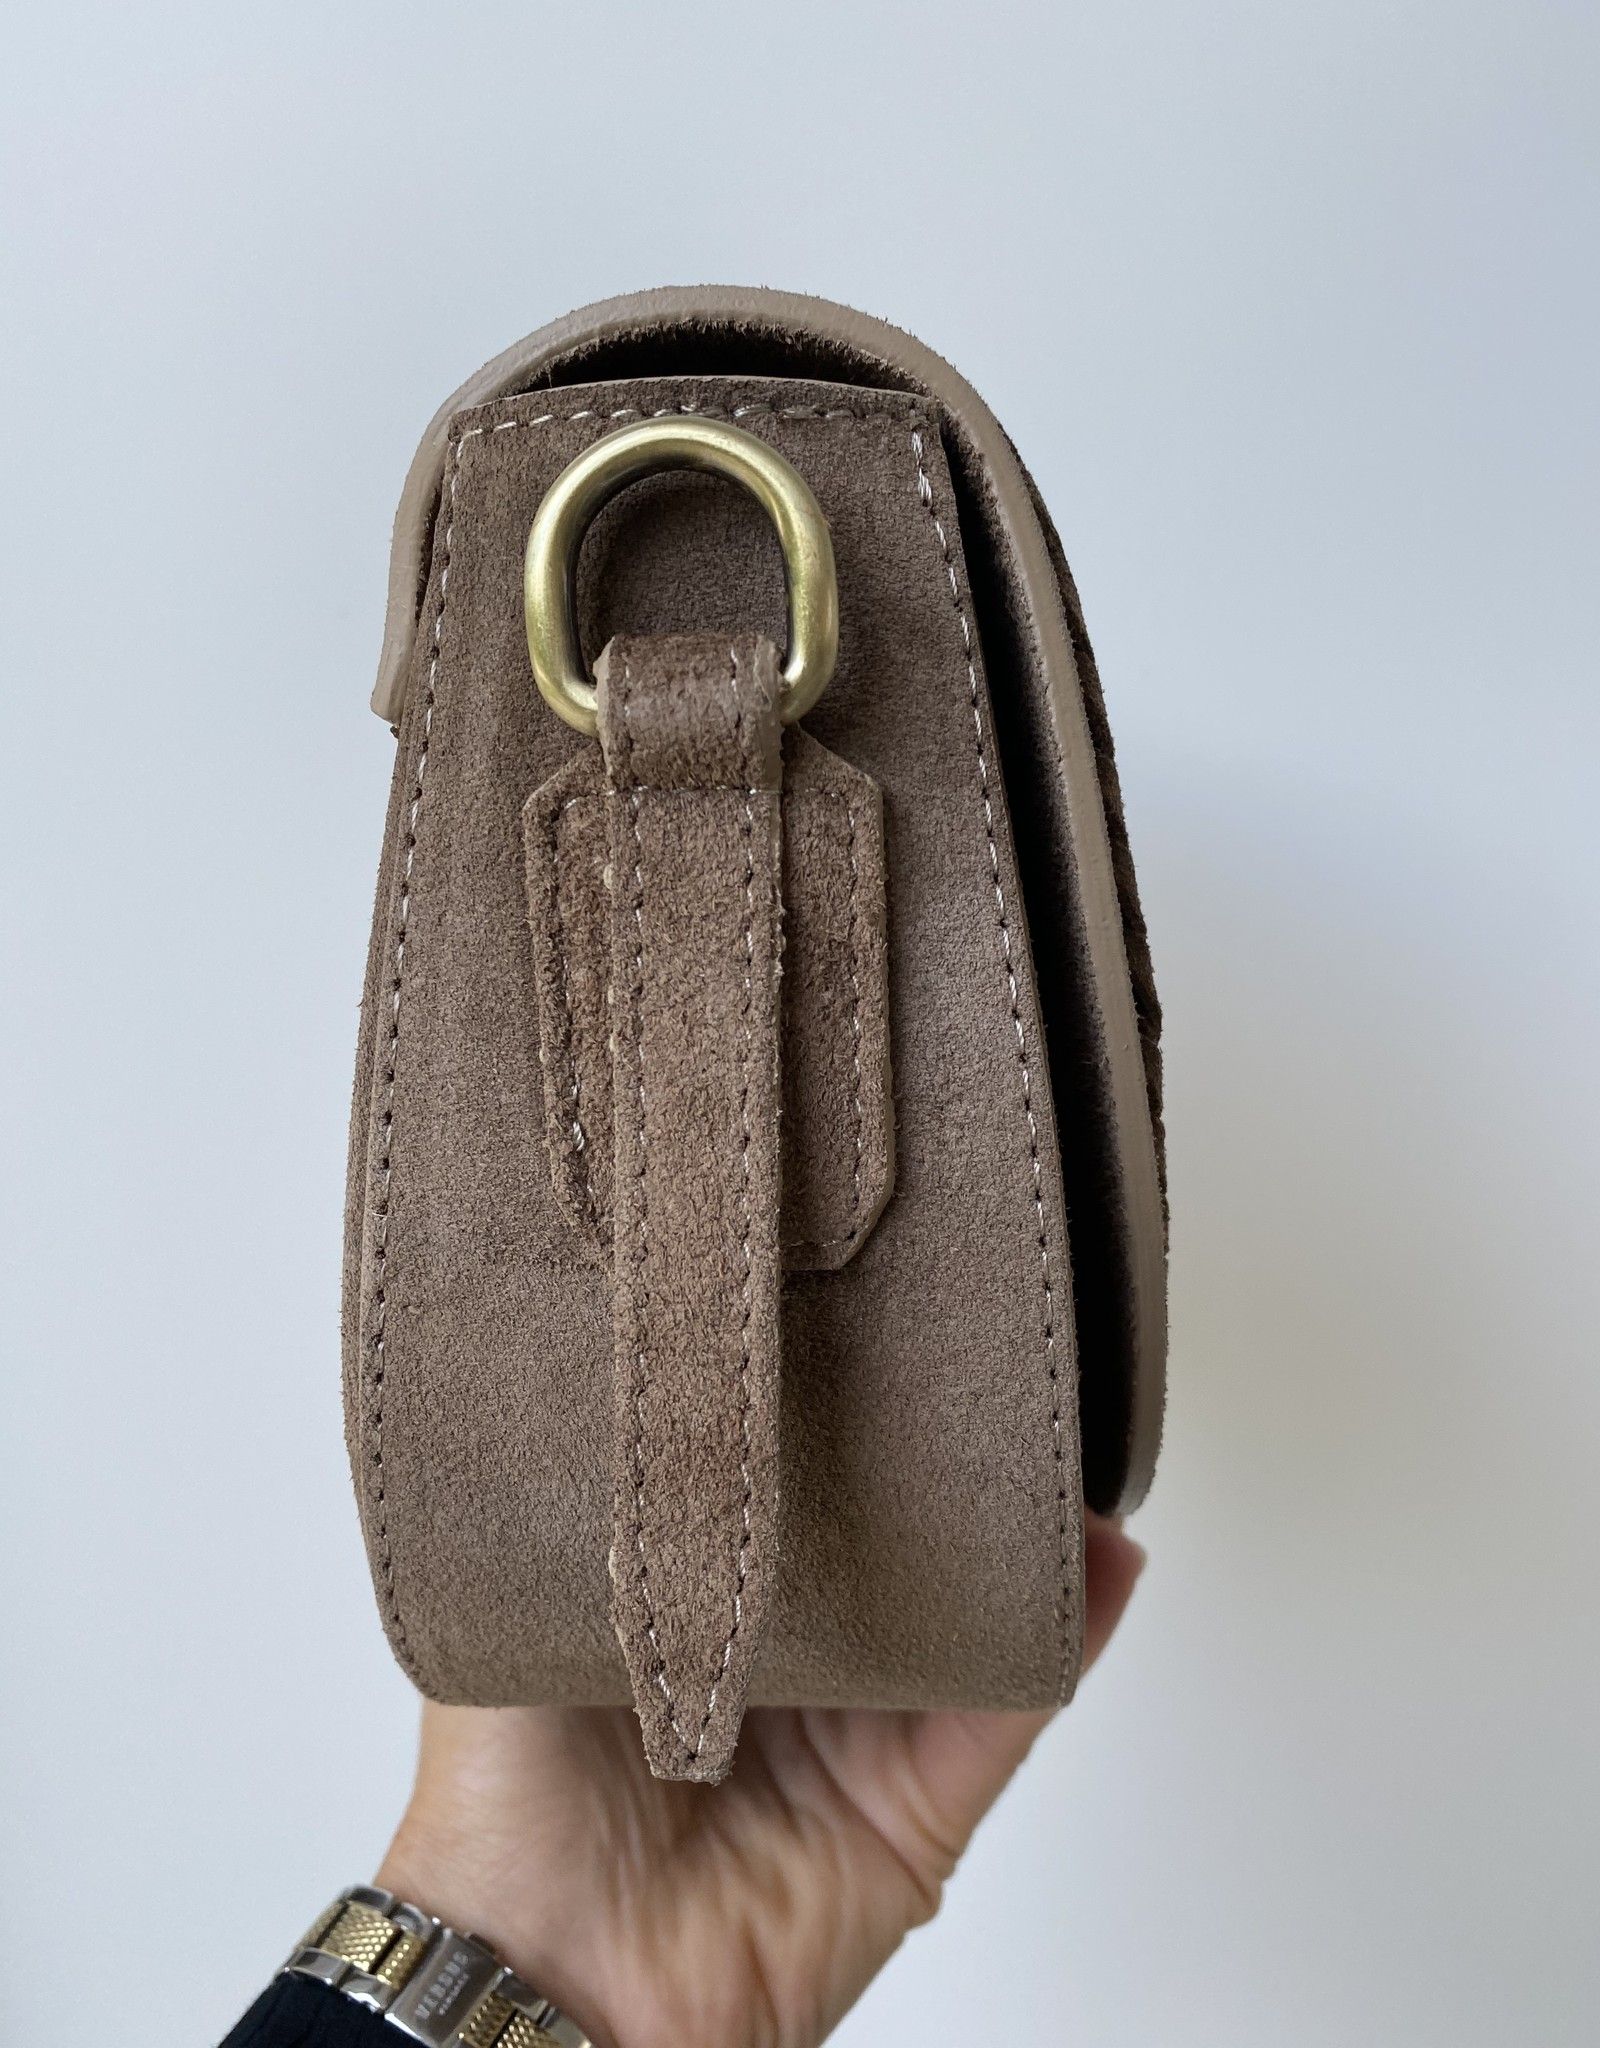 Suede bag with braid accent in front